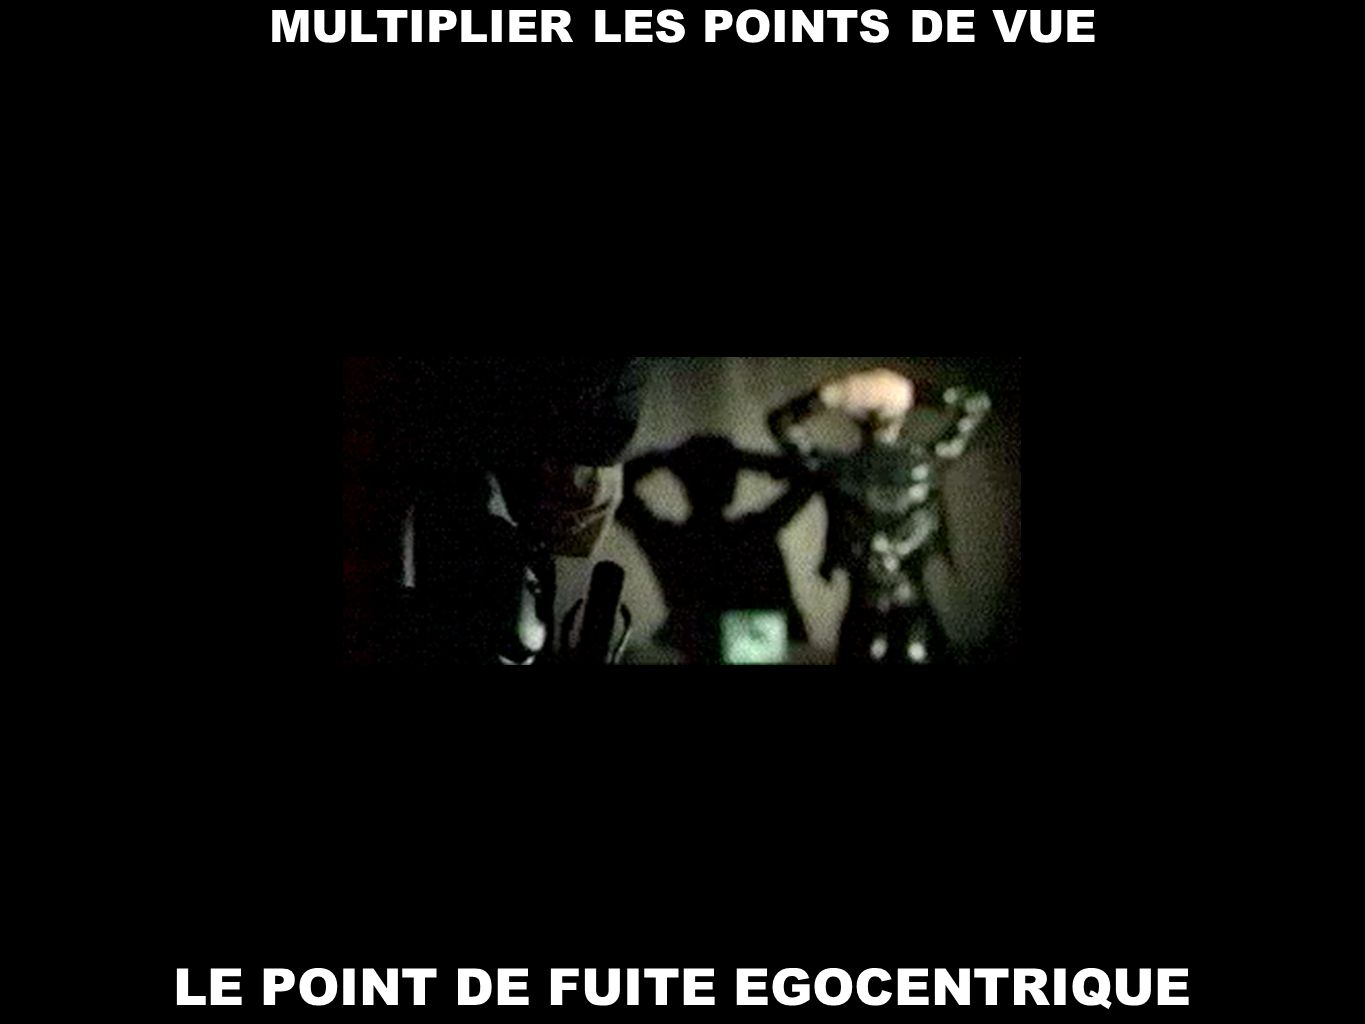 LE POINT DE FUITE EGOCENTRIQUE MULTIPLIER LES POINTS DE VUE